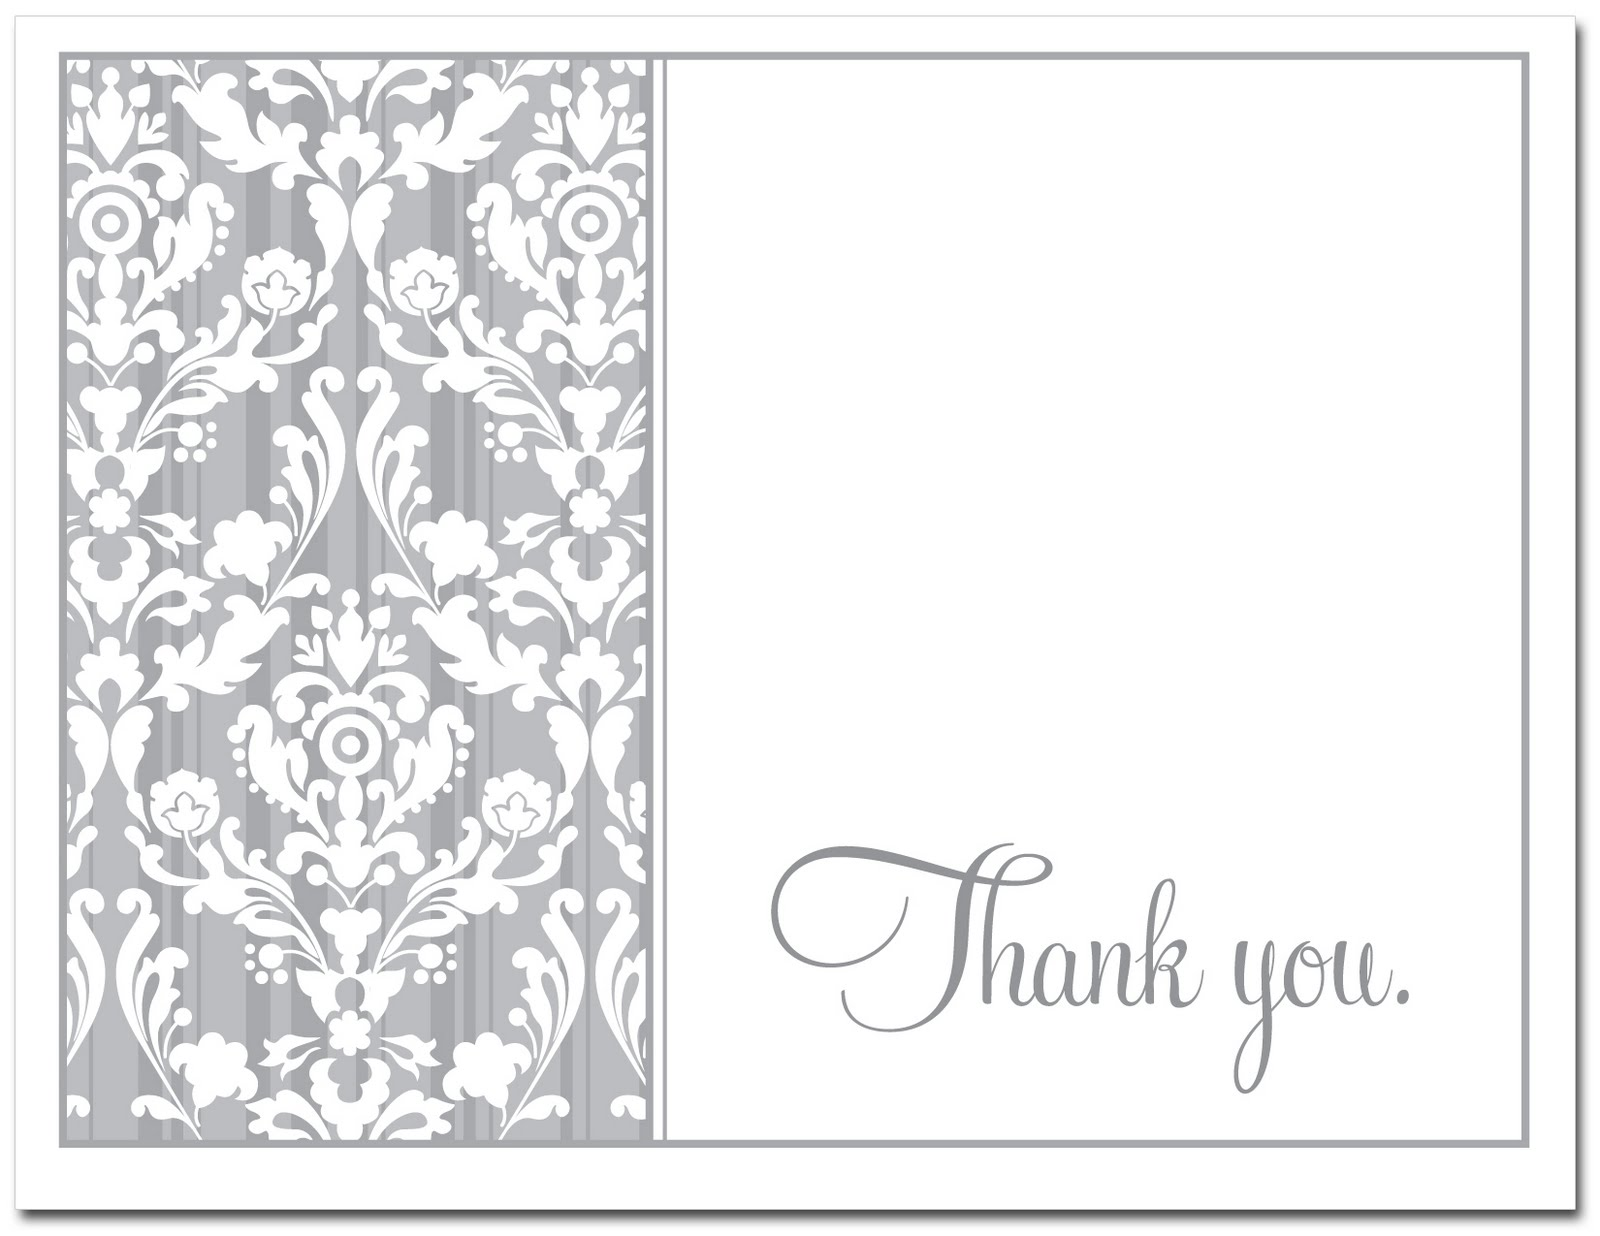 Thank You Notes: For Free!